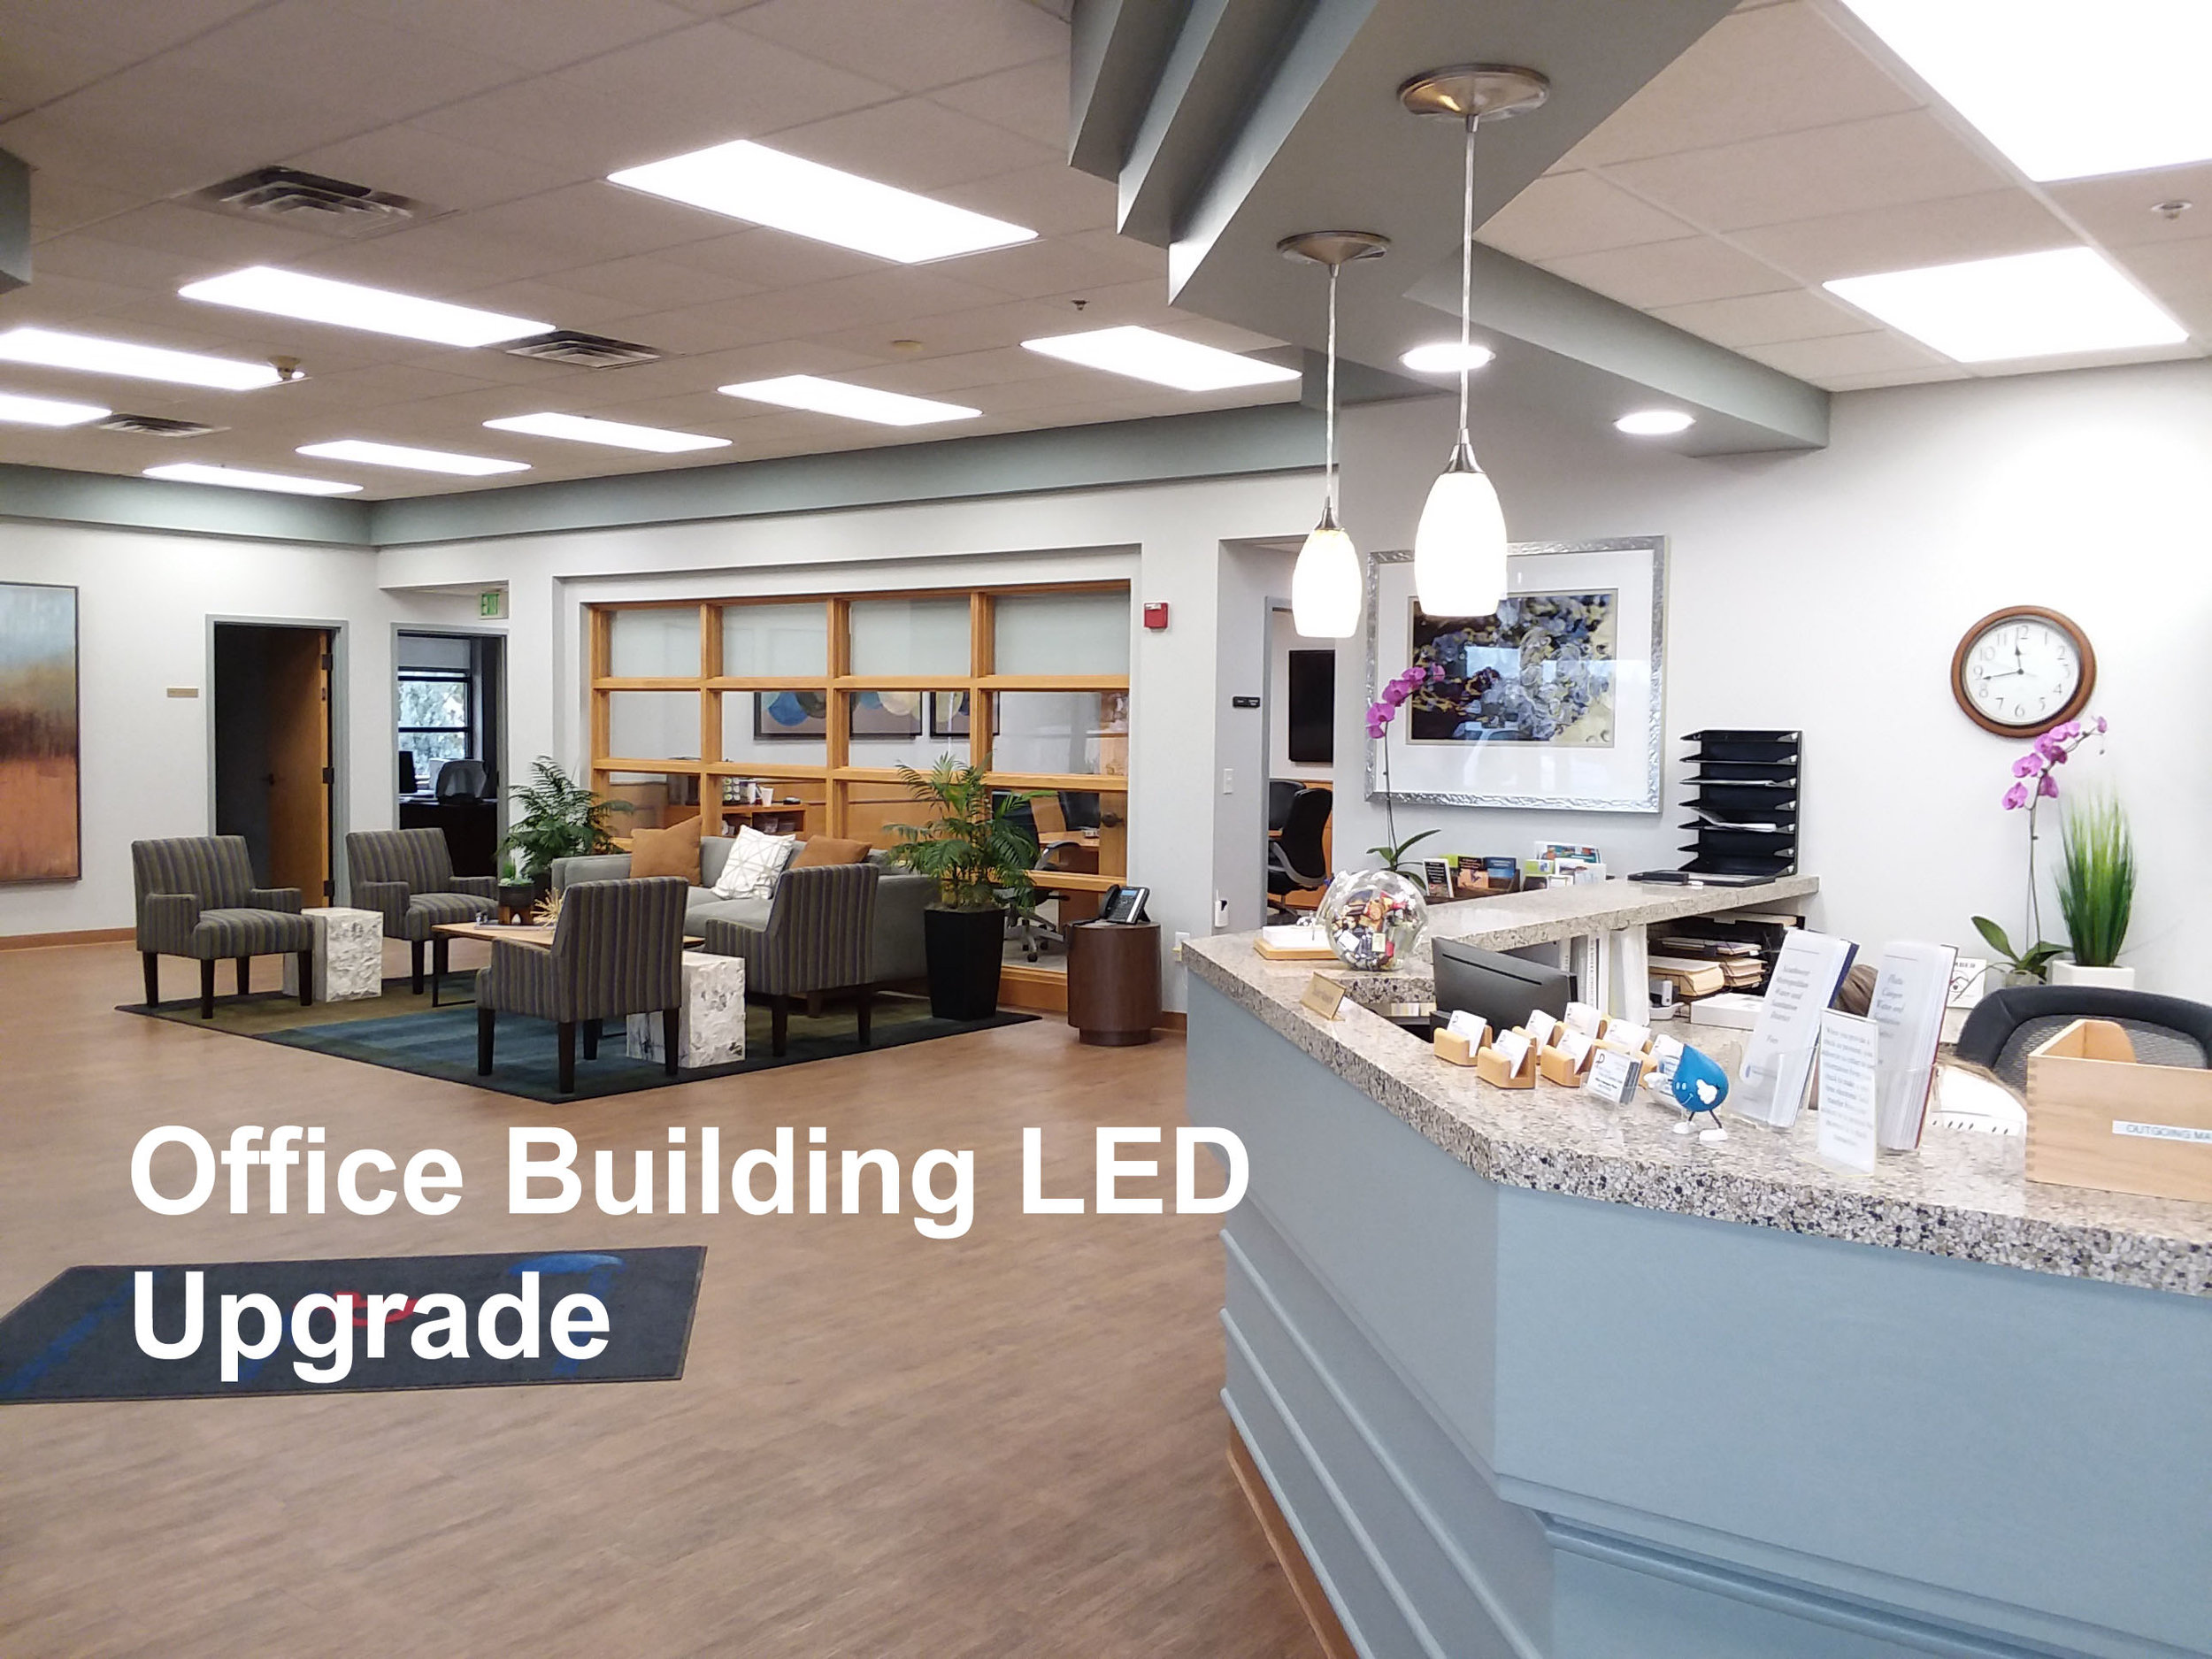 Entire office building LED lighting upgrade in Littleton, Colorado.